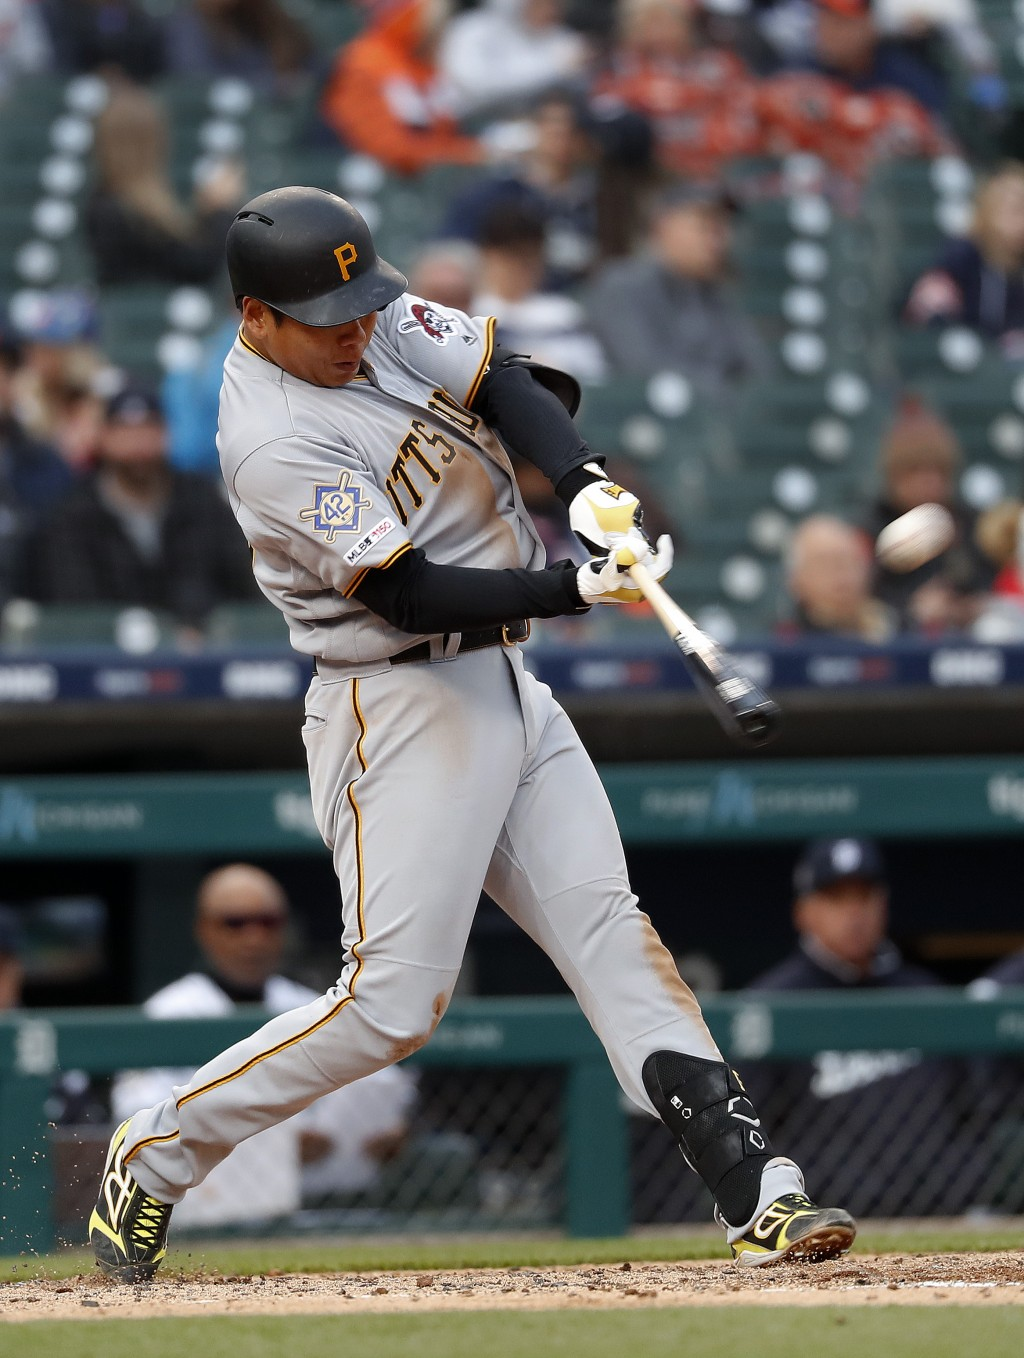 Pittsburgh Pirates' Jung Ho Kang hits a two-run home run in the fourth inning of a baseball game against the Detroit Tigers in Detroit, Tuesday, April